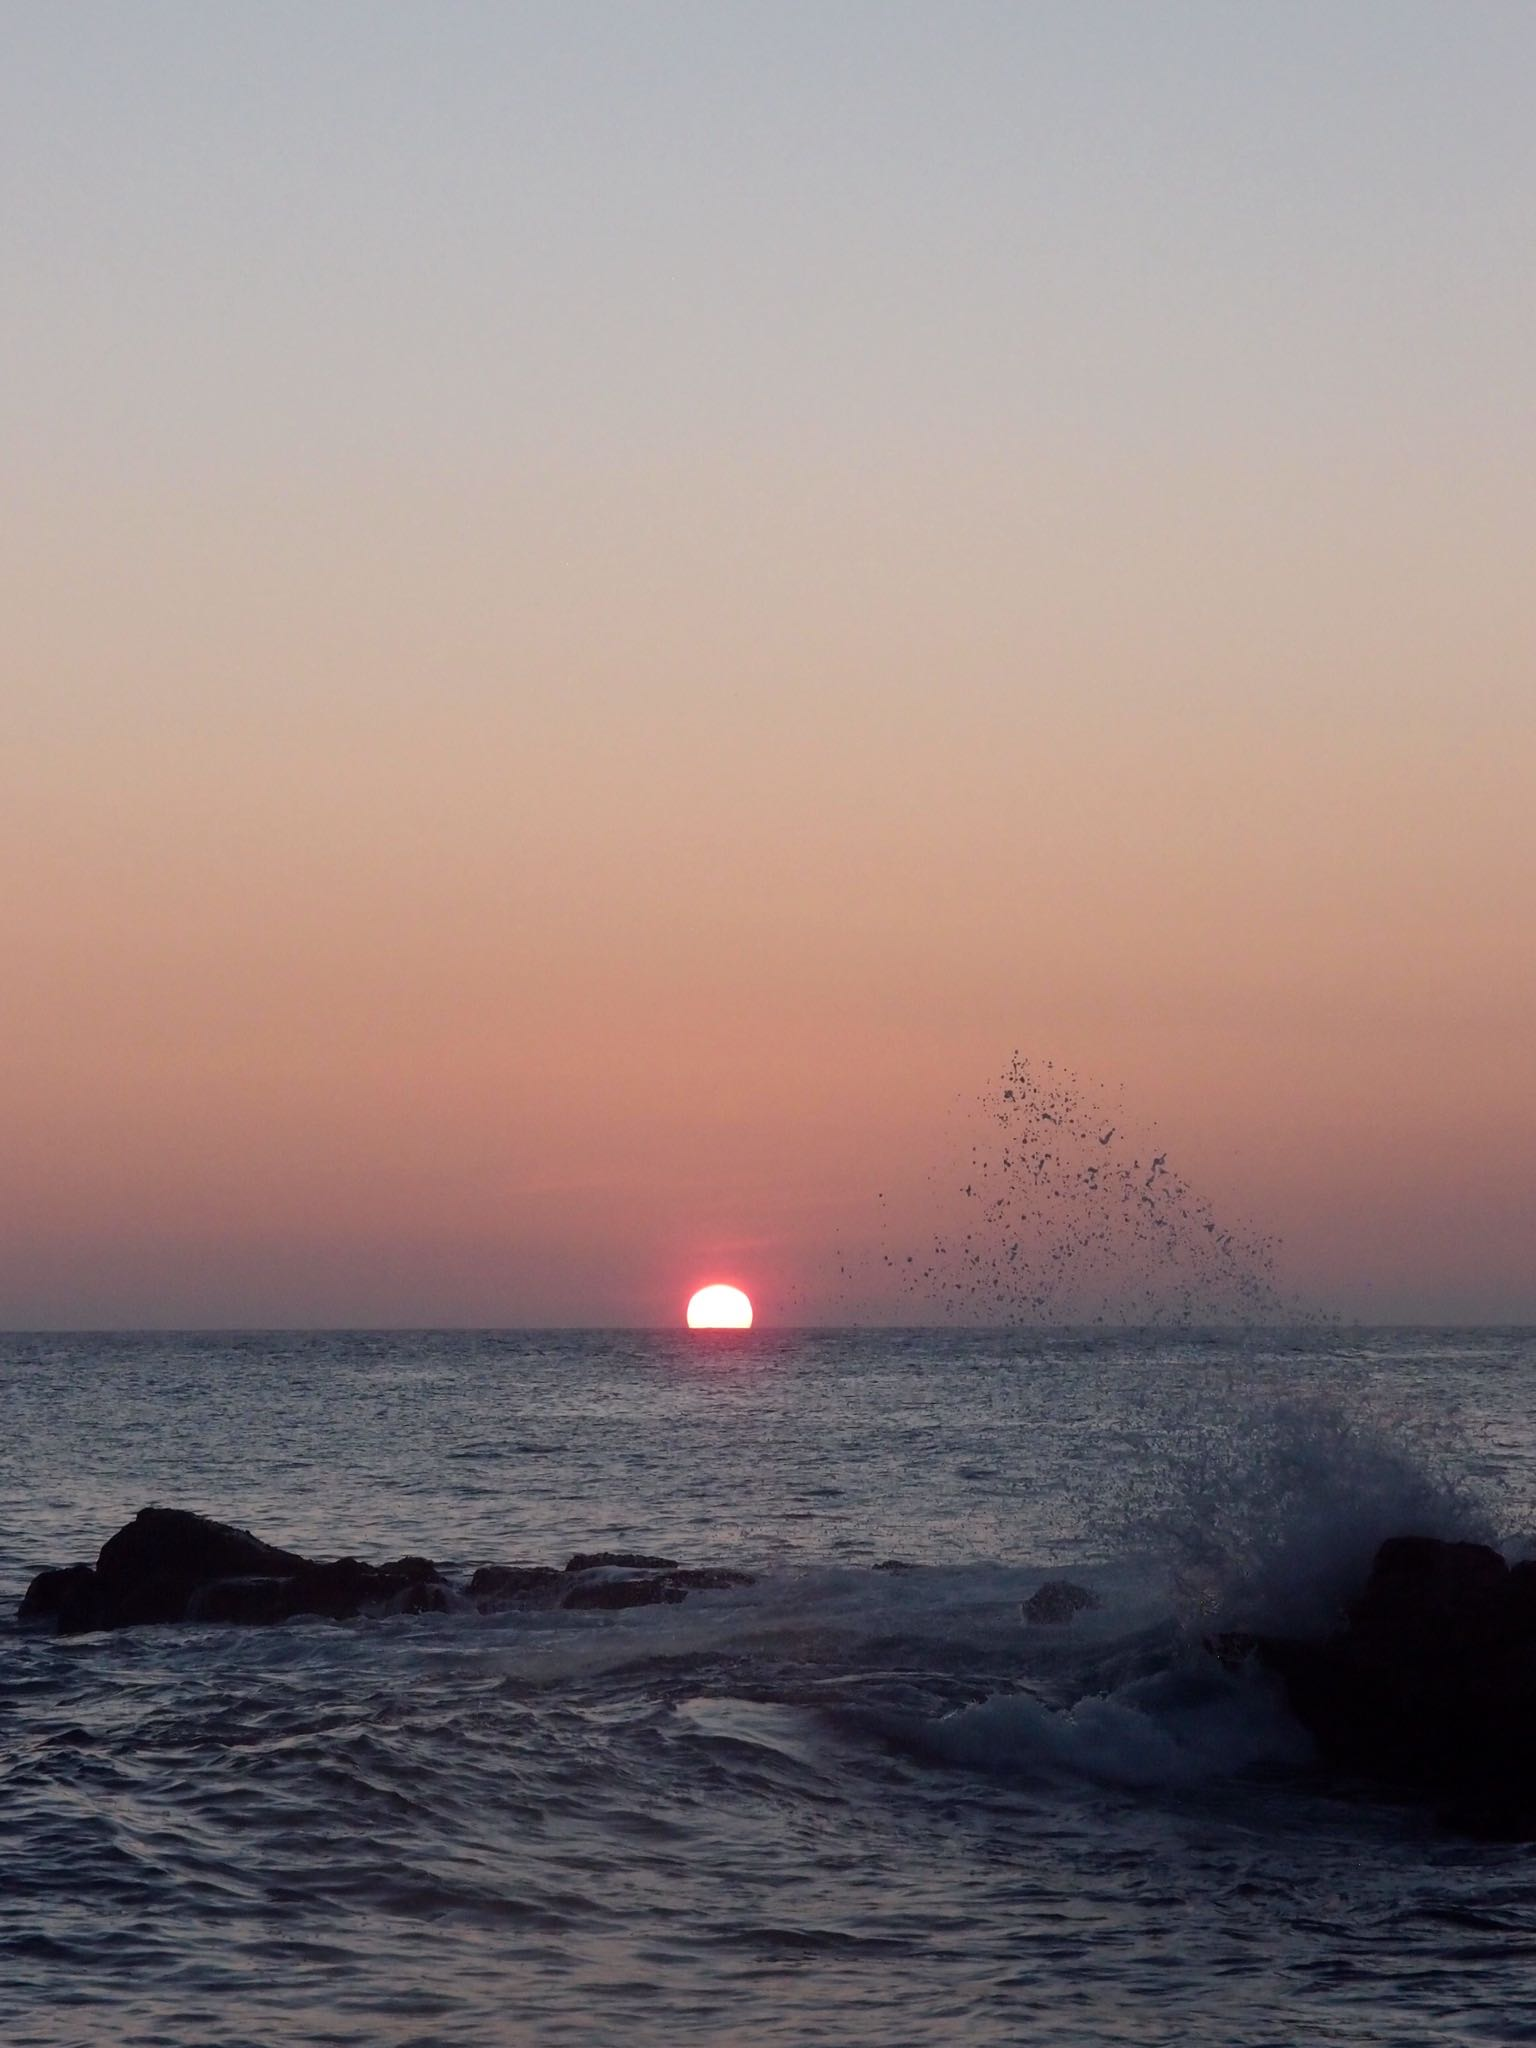 - Have a look at this sunset. What draws your eye?Now look at and focus on the sea spray or the pale blue sky at the top of the image and try and not look at the sun.Hard?